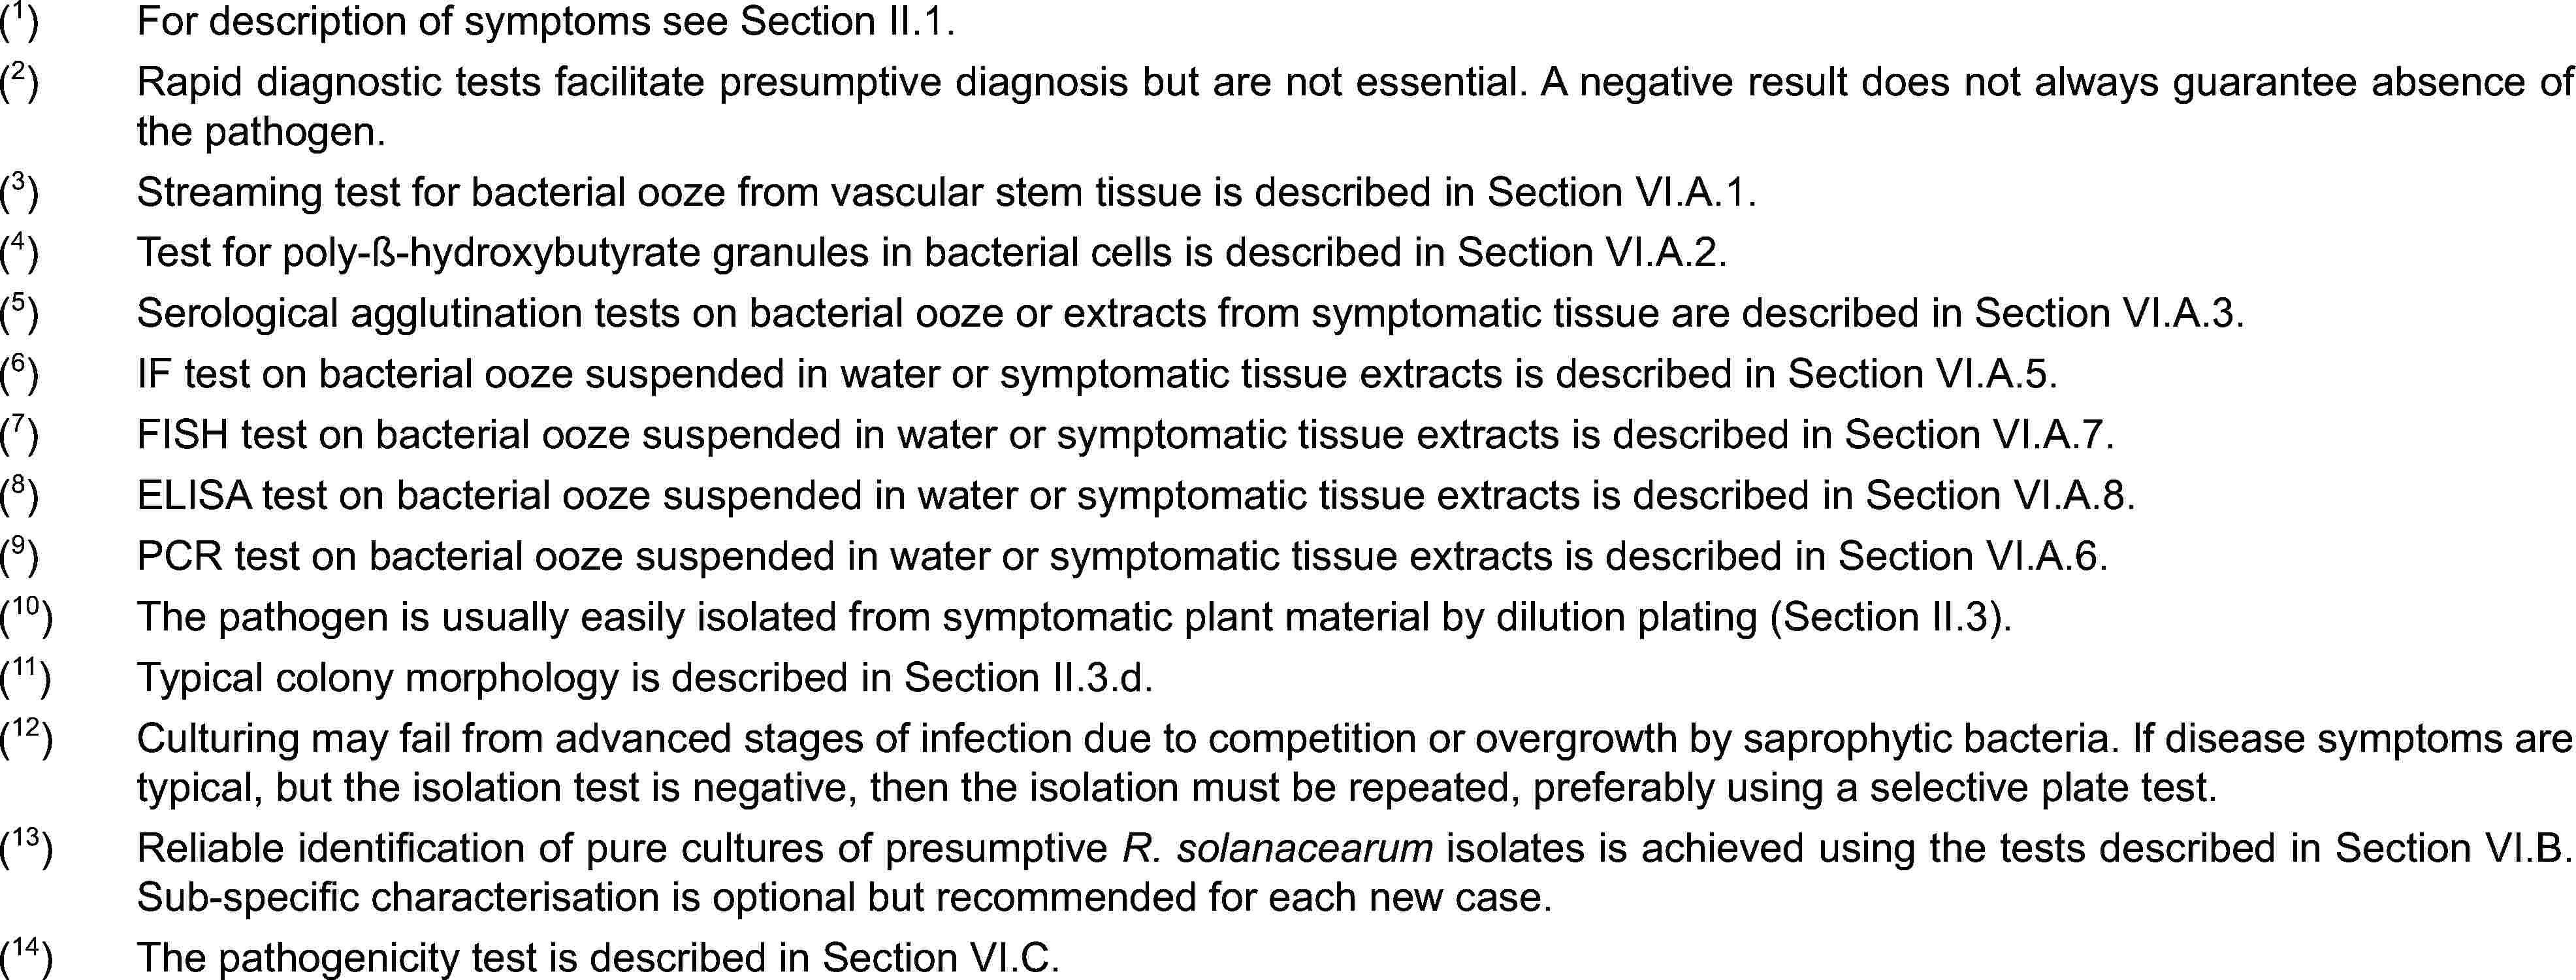 (1)For description of symptoms see Section II.1.(2)Rapid diagnostic tests facilitate presumptive diagnosis but are not essential. A negative result does not always guarantee absence of the pathogen.(3)Streaming test for bacterial ooze from vascular stem tissue is described in Section VI.A.1.(4)Test for poly-ß-hydroxybutyrate granules in bacterial cells is described in Section VI.A.2.(5)Serological agglutination tests on bacterial ooze or extracts from symptomatic tissue are described in Section VI.A.3.(6)IF test on bacterial ooze suspended in water or symptomatic tissue extracts is described in Section VI.A.5.(7)FISH test on bacterial ooze suspended in water or symptomatic tissue extracts is described in Section VI.A.7.(8)ELISA test on bacterial ooze suspended in water or symptomatic tissue extracts is described in Section VI.A.8.(9)PCR test on bacterial ooze suspended in water or symptomatic tissue extracts is described in Section VI.A.6.(10)The pathogen is usually easily isolated from symptomatic plant material by dilution plating (Section II.3).(11)Typical colony morphology is described in Section II.3.d.(12)Culturing may fail from advanced stages of infection due to competition or overgrowth by saprophytic bacteria. If disease symptoms are typical, but the isolation test is negative, then the isolation must be repeated, preferably using a selective plate test.(13)Reliable identification of pure cultures of presumptive R. solanacearum isolates is achieved using the tests described in Section VI.B. Sub-specific characterisation is optional but recommended for each new case.(14)The pathogenicity test is described in Section VI.C.